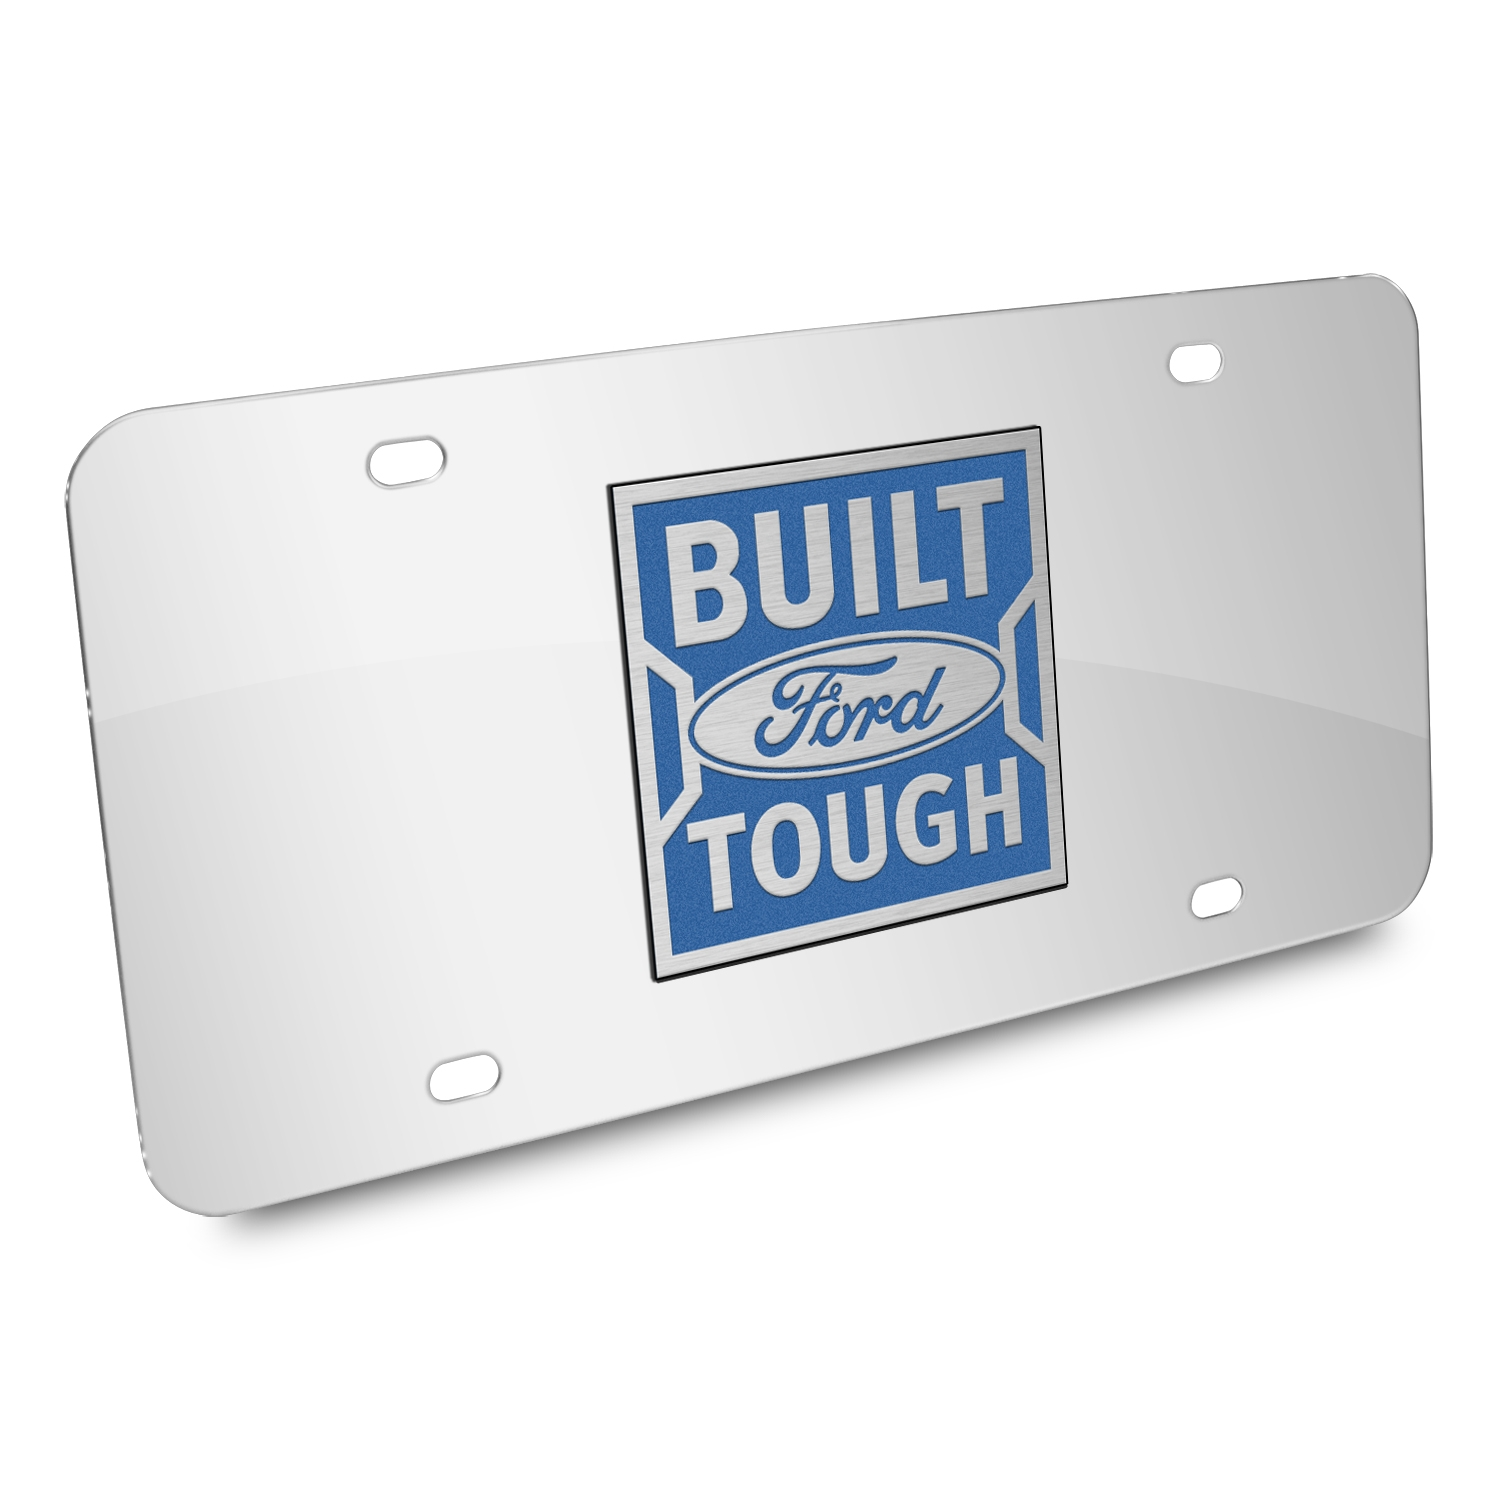 Ford Built Ford Tough in Blue 3D Mirror Chrome Stainless Steel License Plate